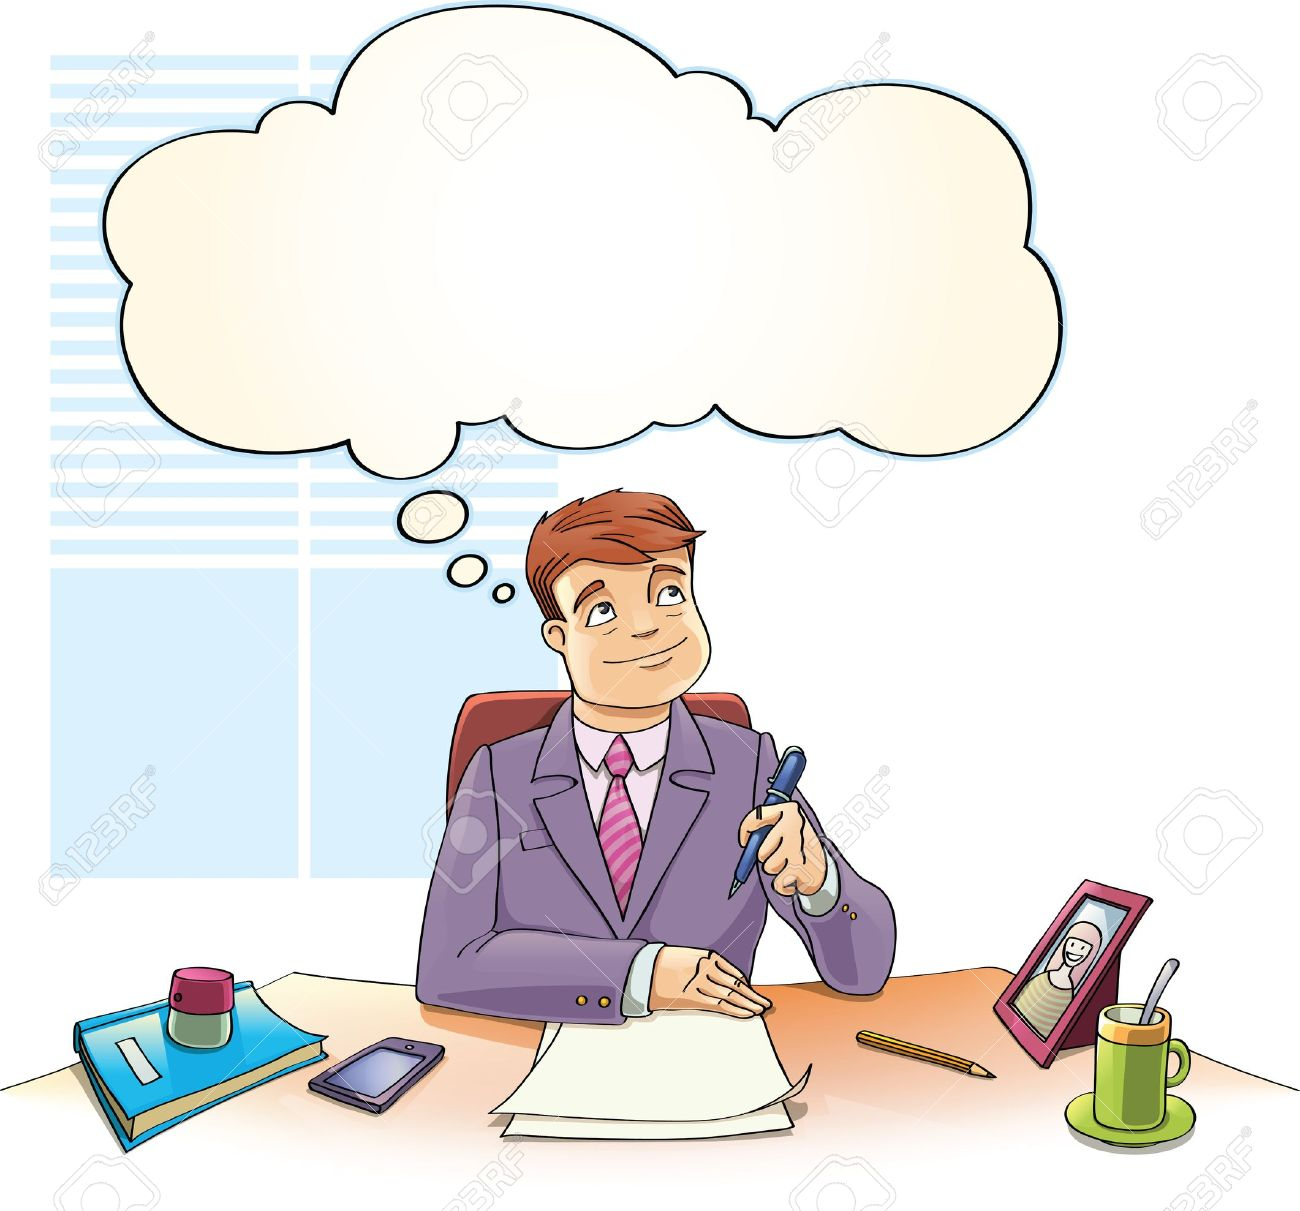 The businessman with the thinking bubble is dreaming over the blank papers on a table in the office. Stock Vector - 19579024